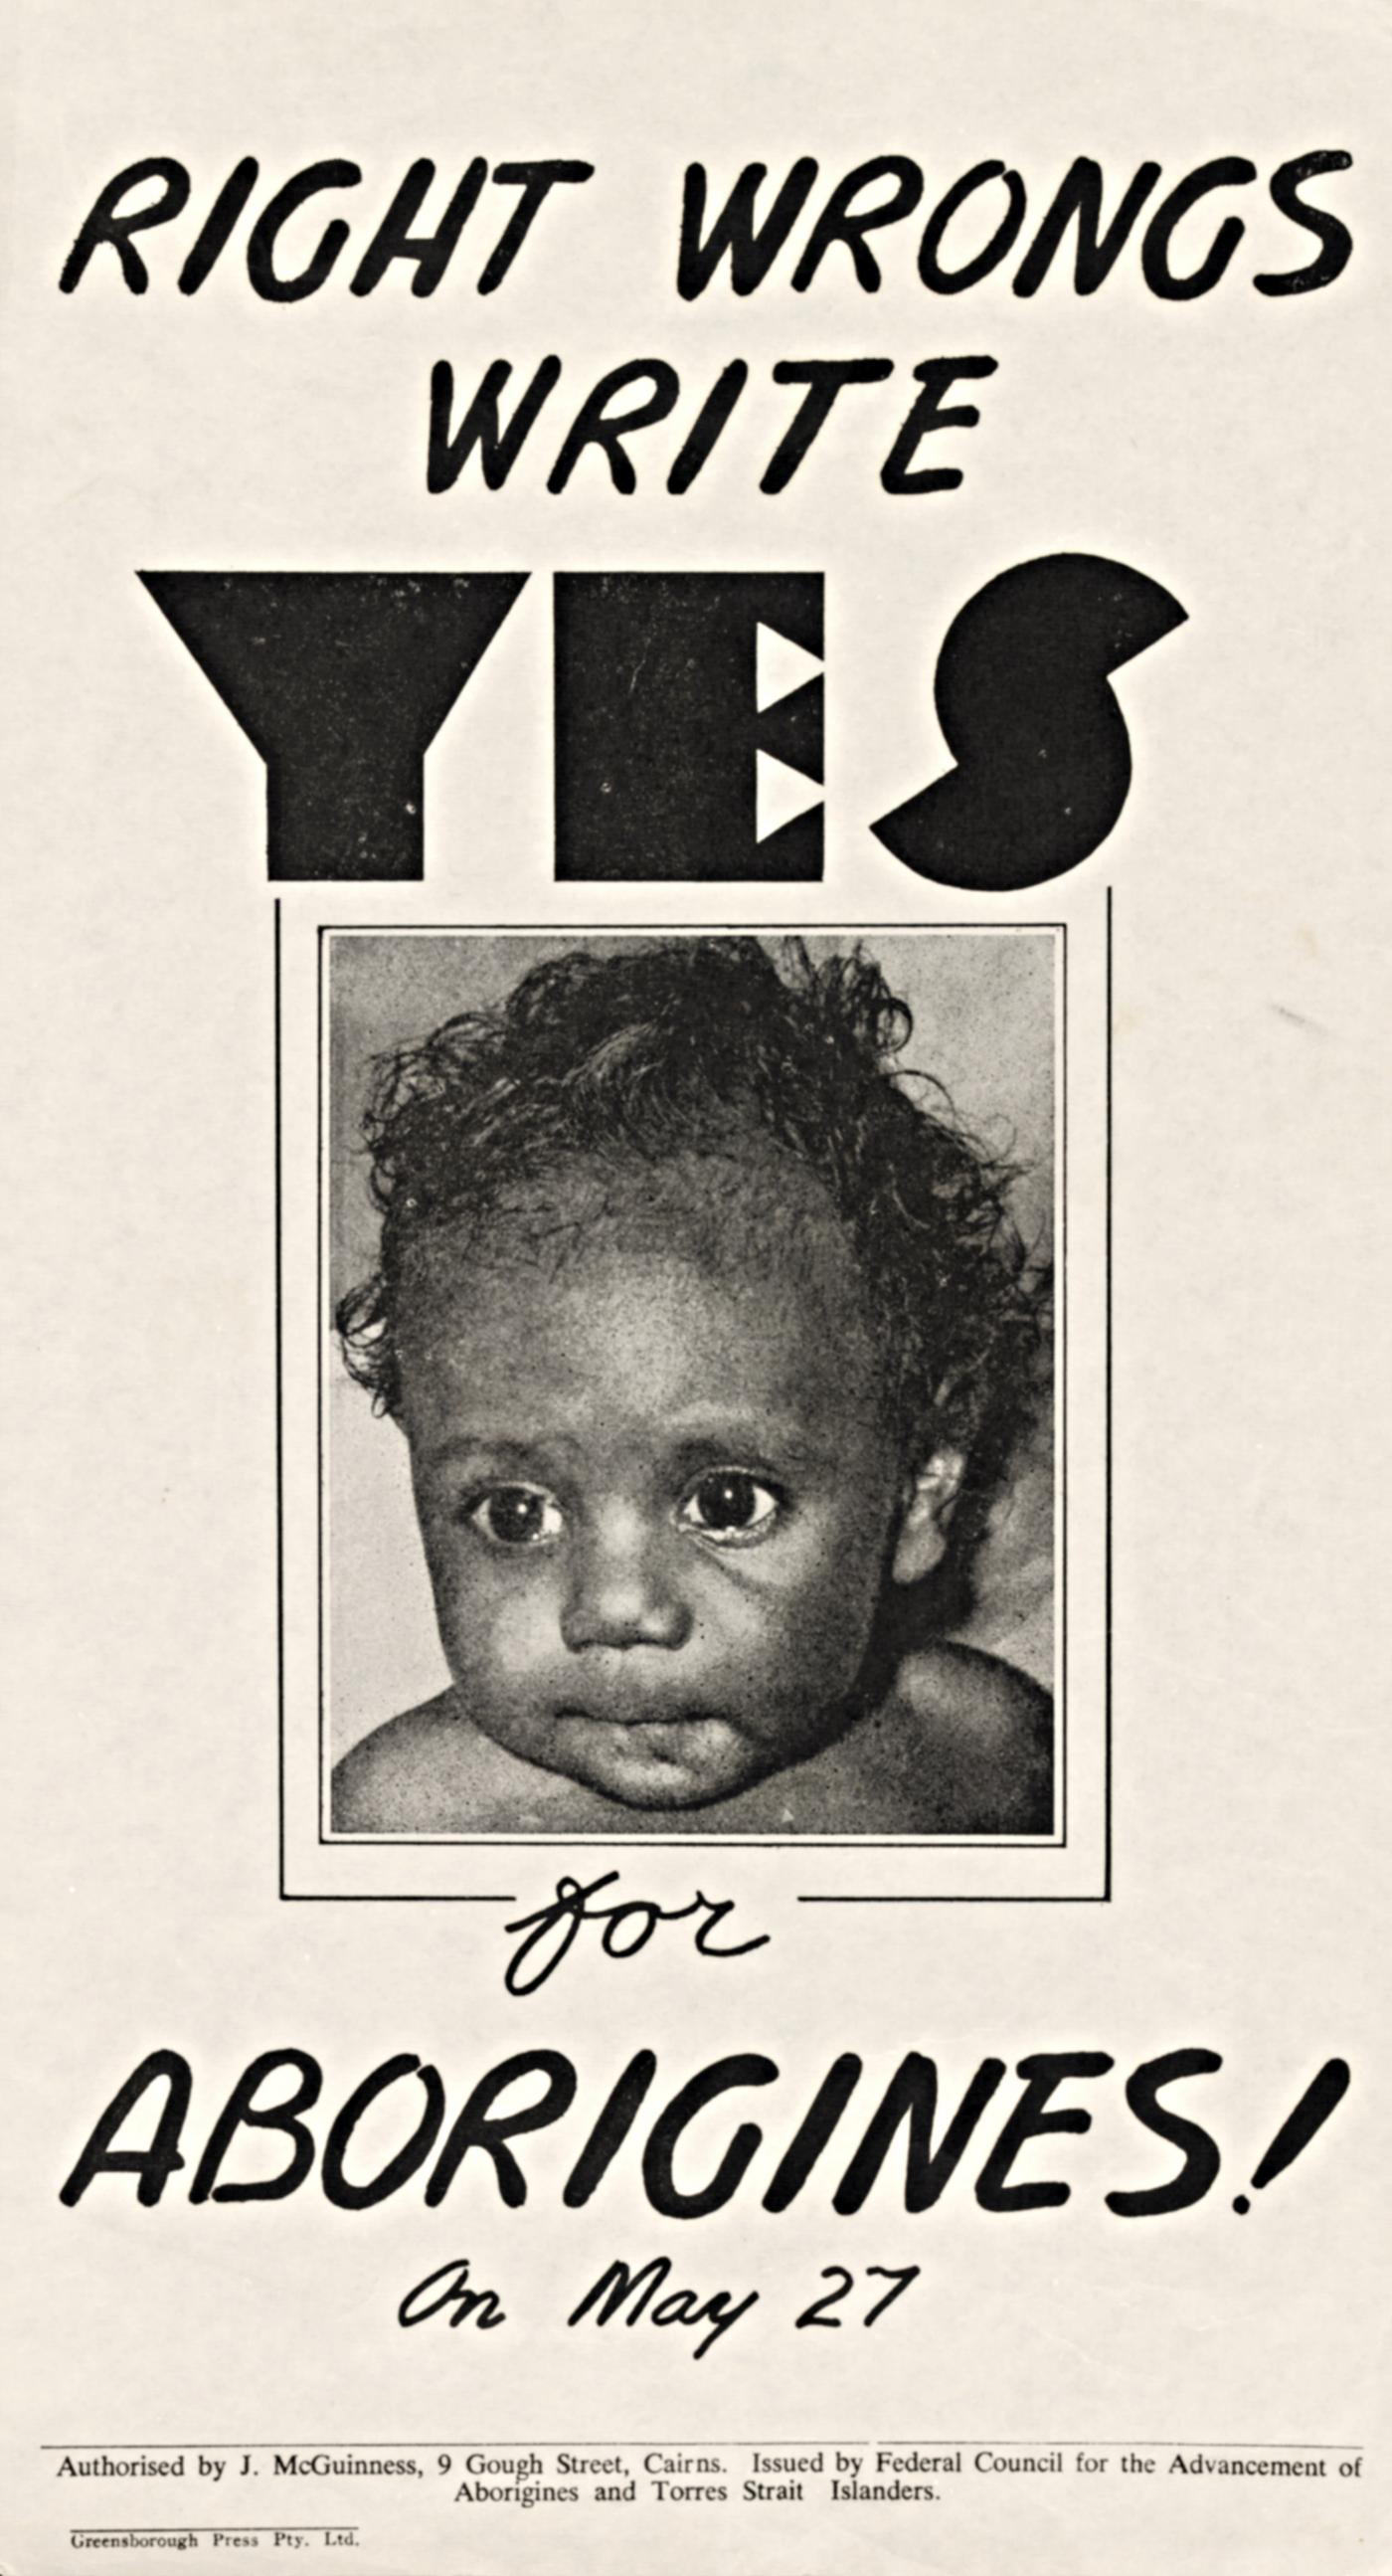 1967 FCAATSI advertisement. 'Right Wrongs, Write Yes'